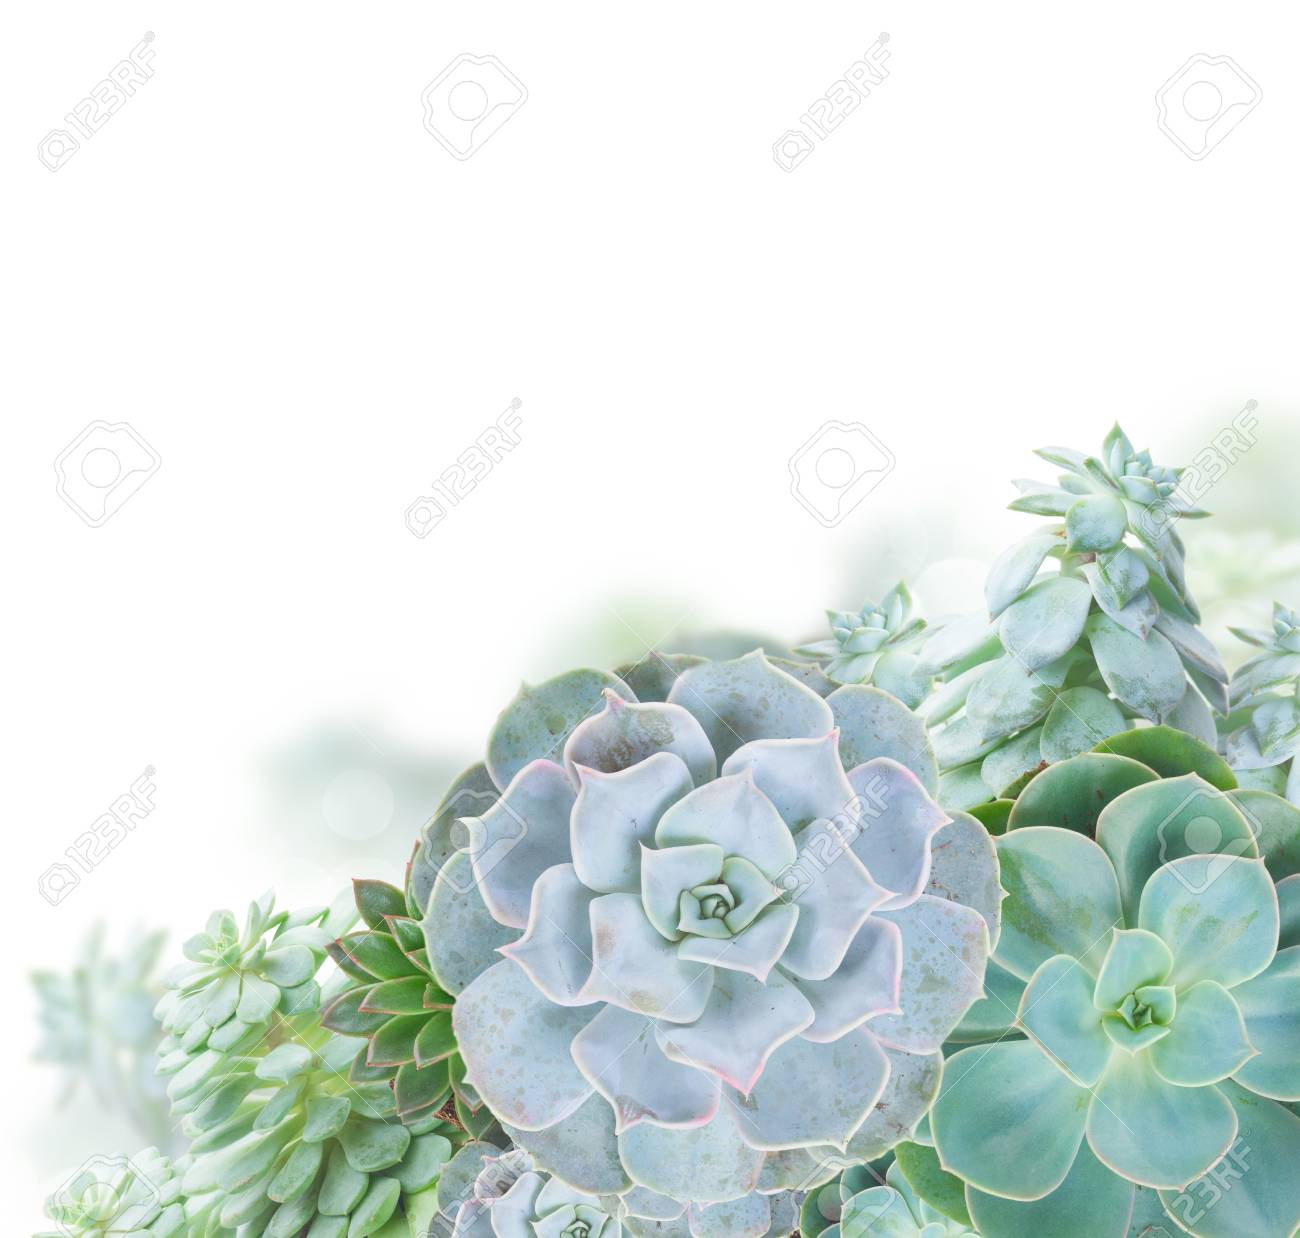 One Succulent Green Plants Border Isolated On White Background Stock Photo Picture And Royalty Free Image Image 76460380